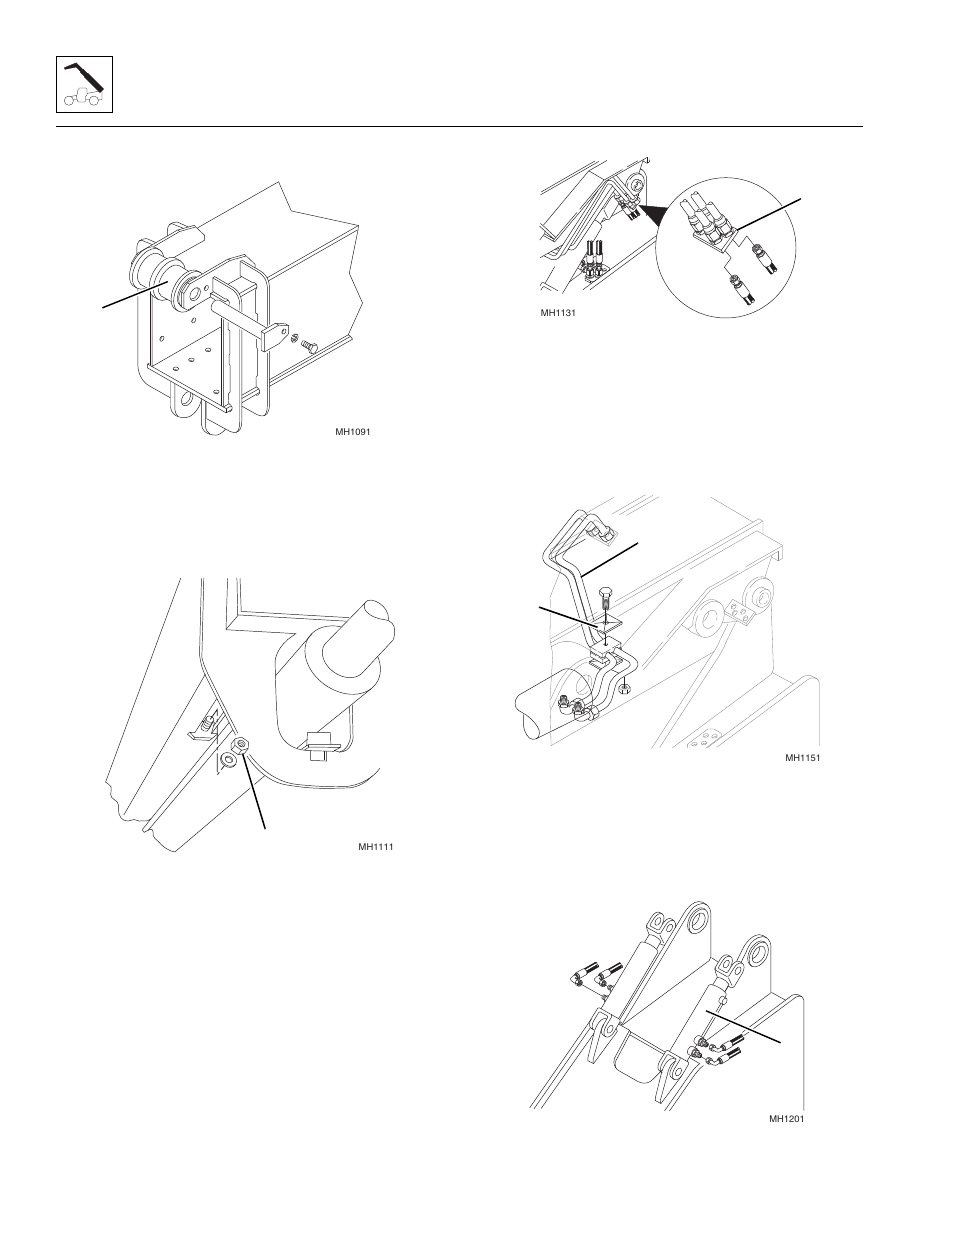 hight resolution of 4 first boom section removal first boom section removal skytrak 8042 service manual user manual page 46 230